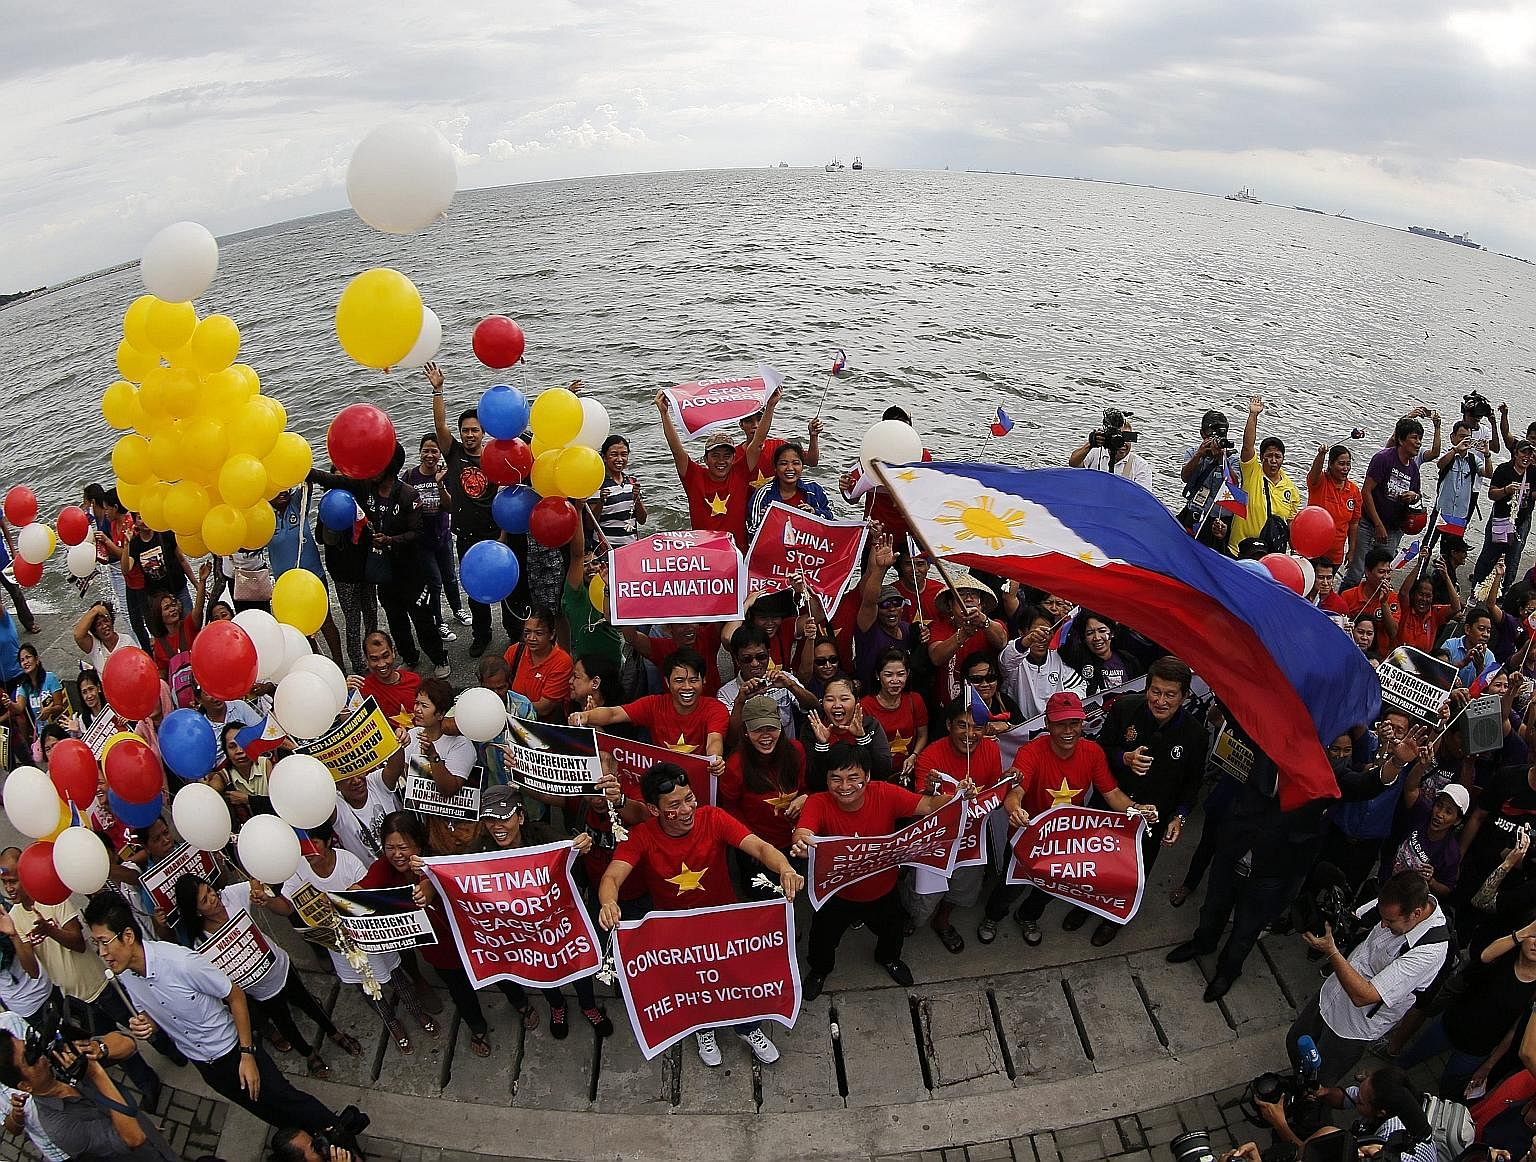 Civil society groups rallied in Manila on Tuesday, ahead of the UN-backed Arbitral Tribunal's ruling. The tribunal ruled unanimously in favour of almost all of the 15 disputes submitted by Manila.